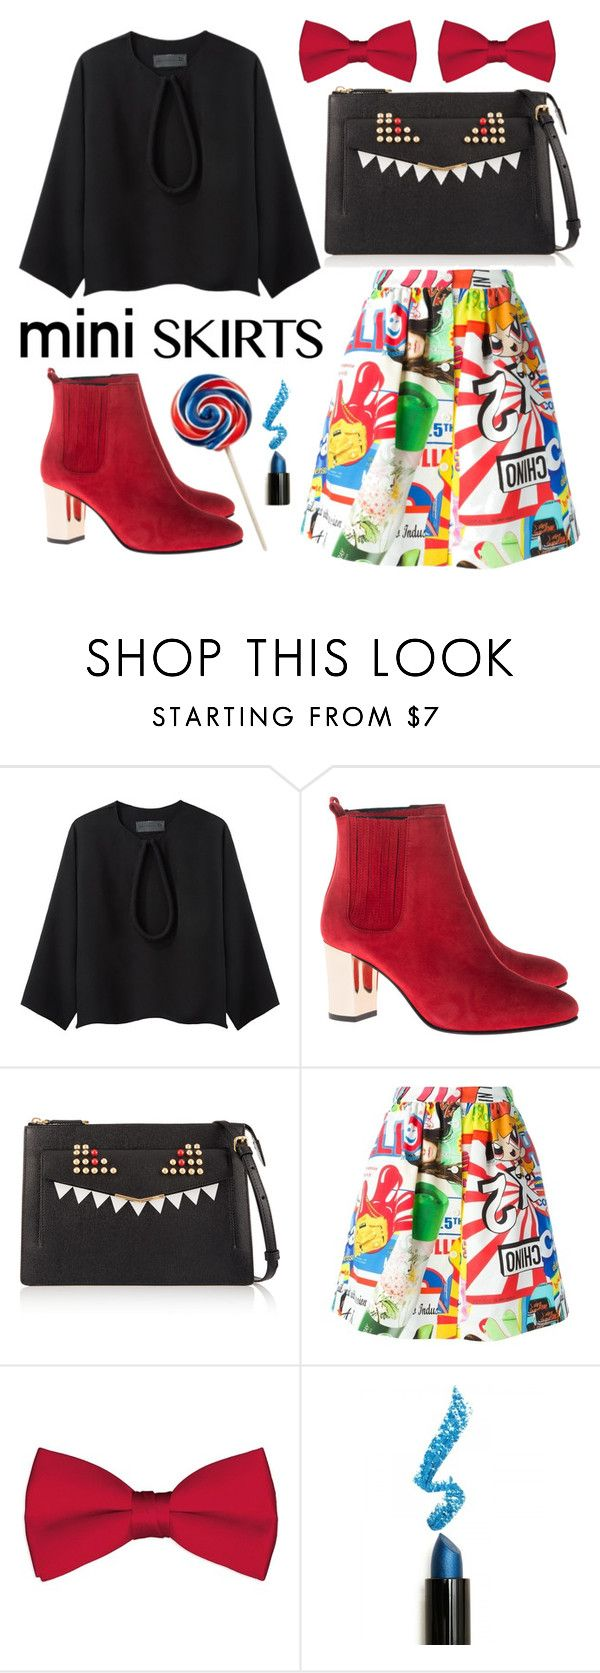 """blue-red-black"" by sandraindriani ❤ liked on Polyvore featuring Jasmin Shokrian Draft No. 17, Opening Ceremony, Fendi, Moschino and Lime Crime"